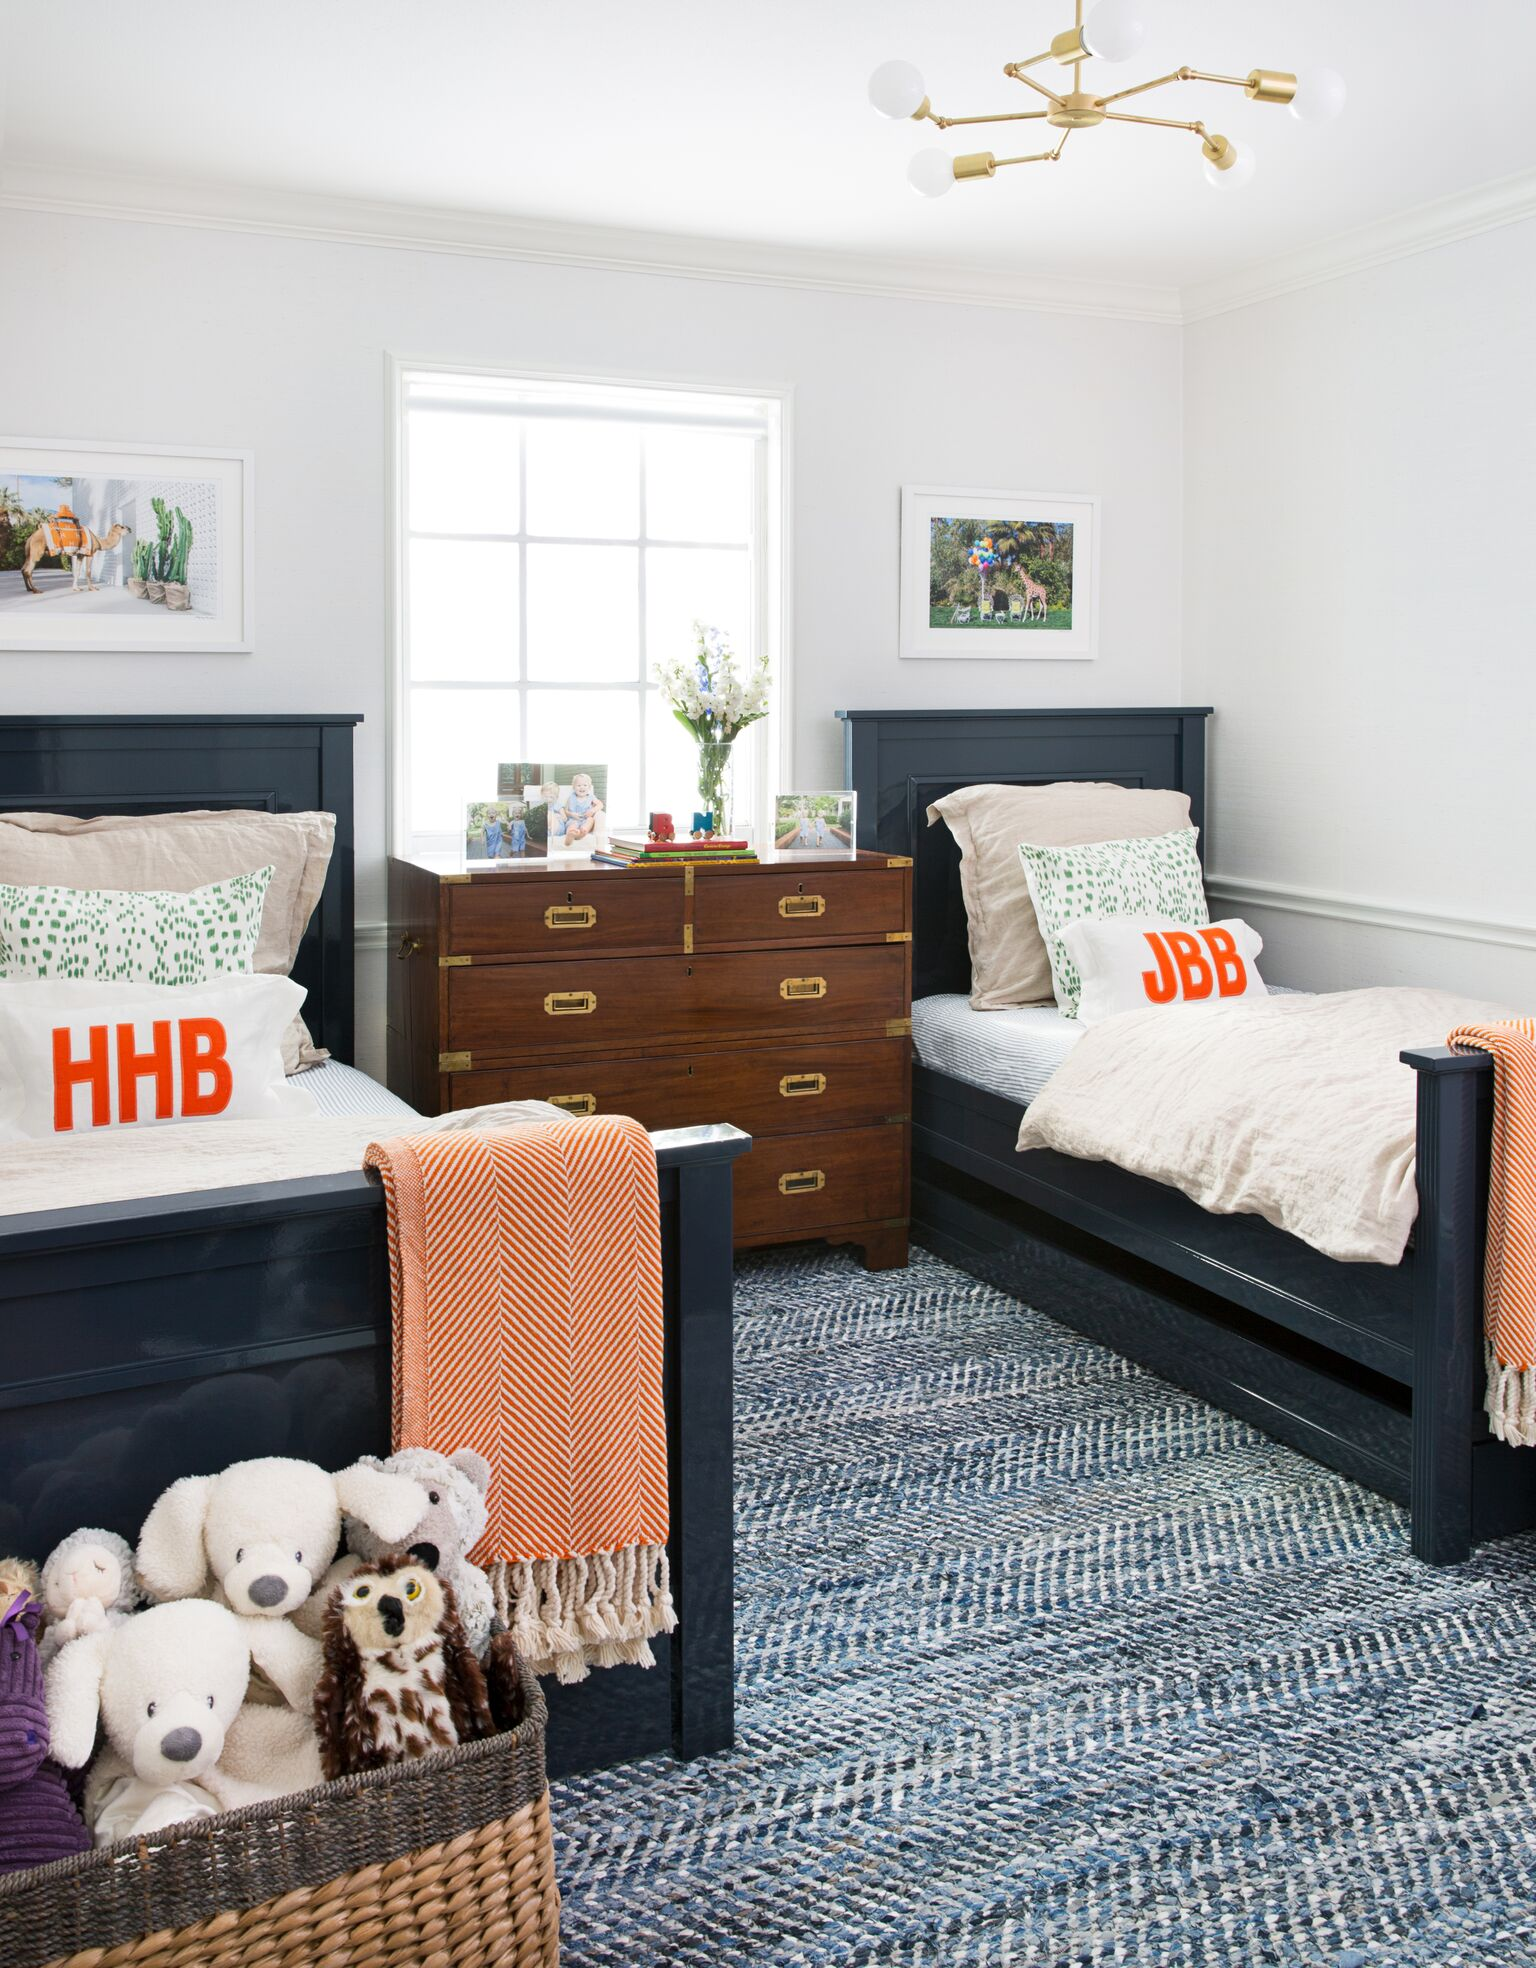 Toddler Boy Room Ideas: Colorful And Classic Kids' Room - Copycatchic